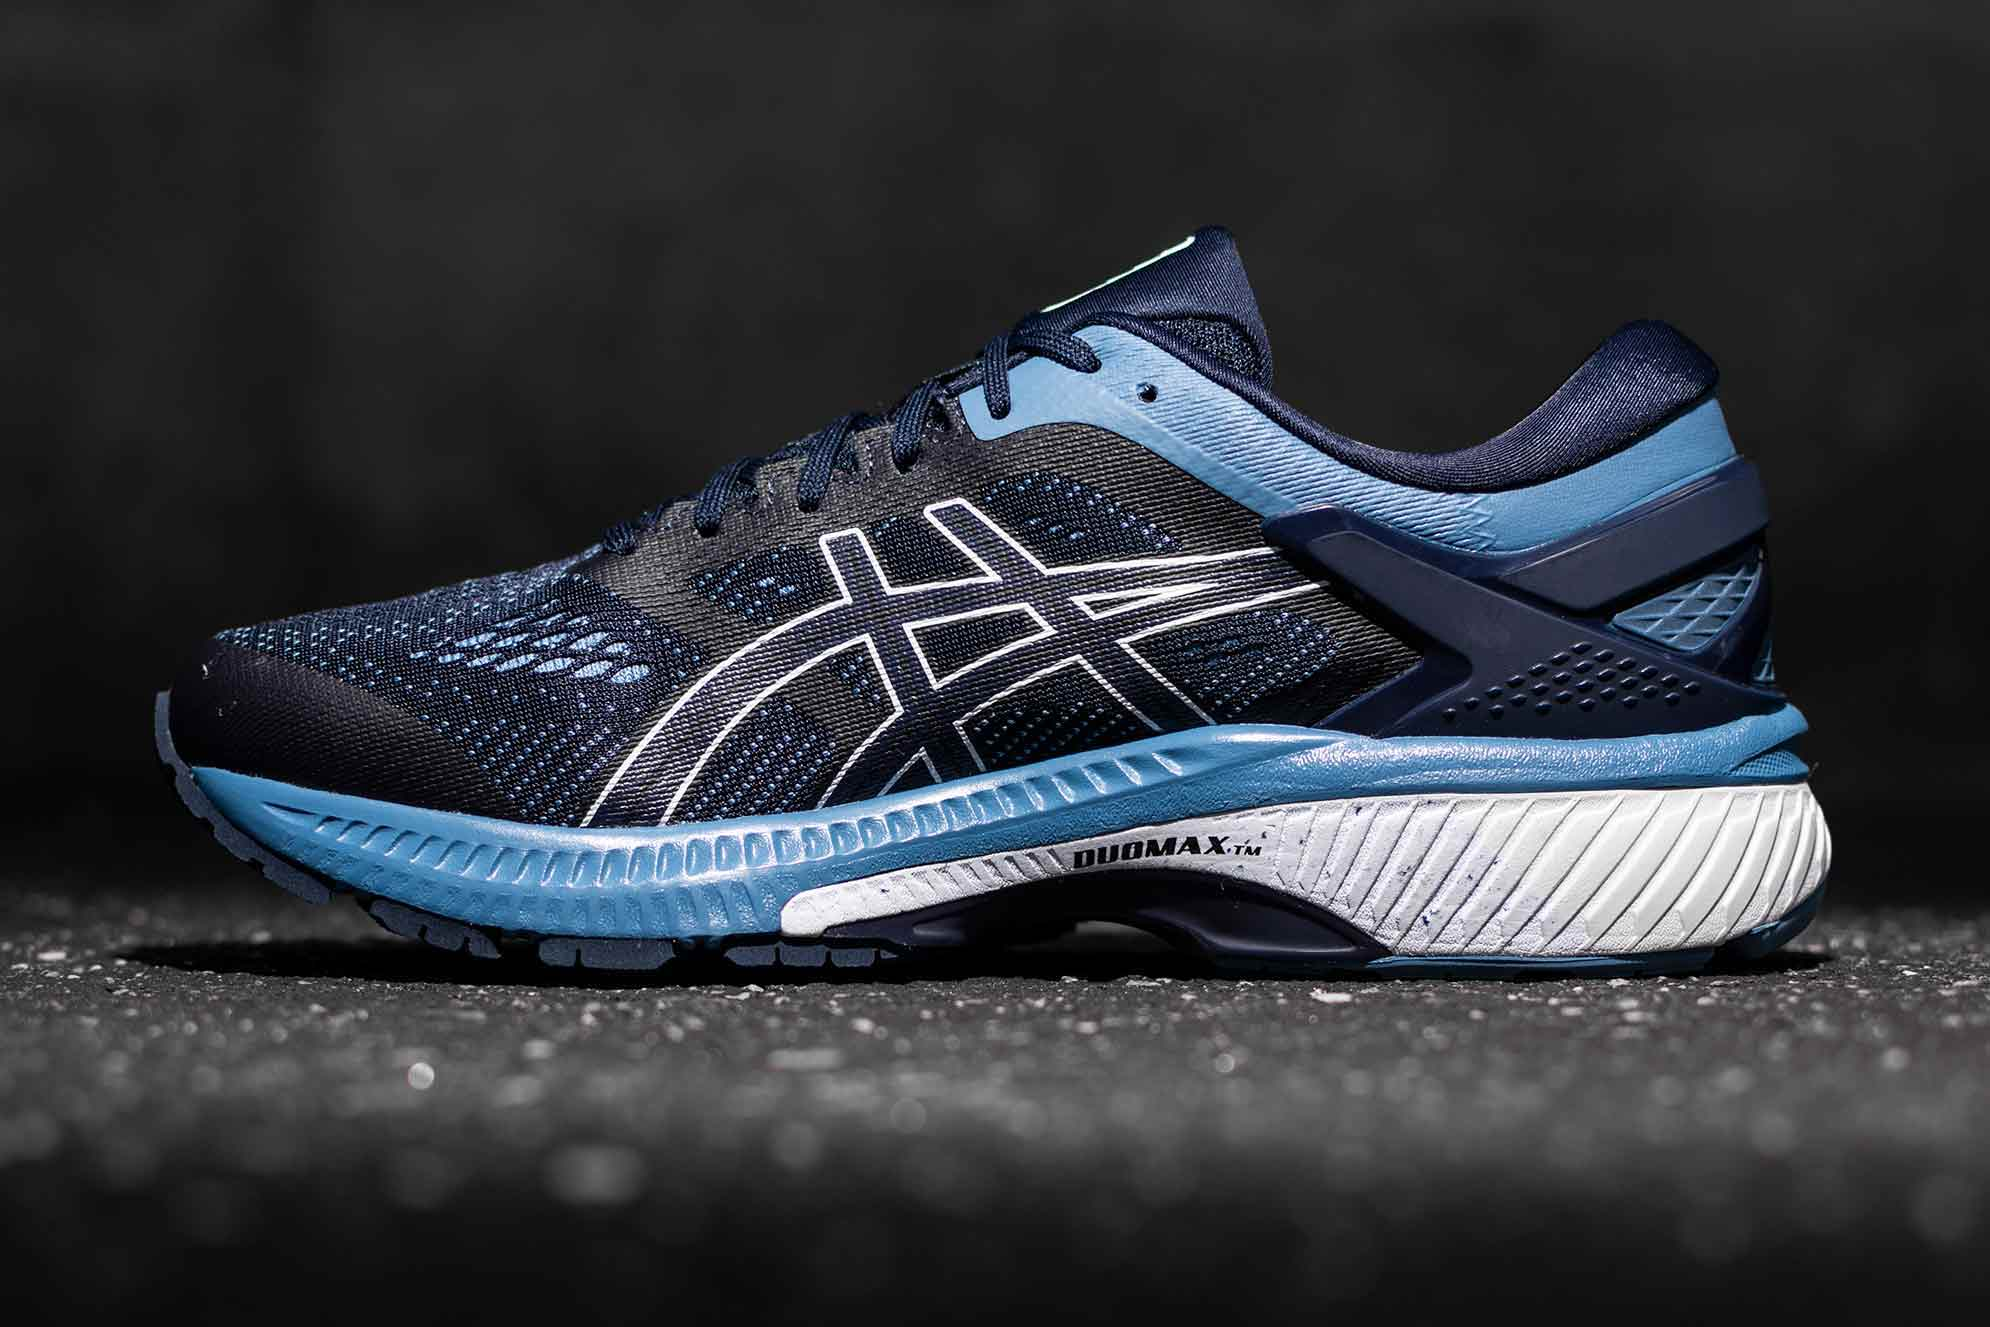 best online super cheap classic style of 2019 ASICS GEL-Kayano 26 Running Shoes Preview – Holabird Sports